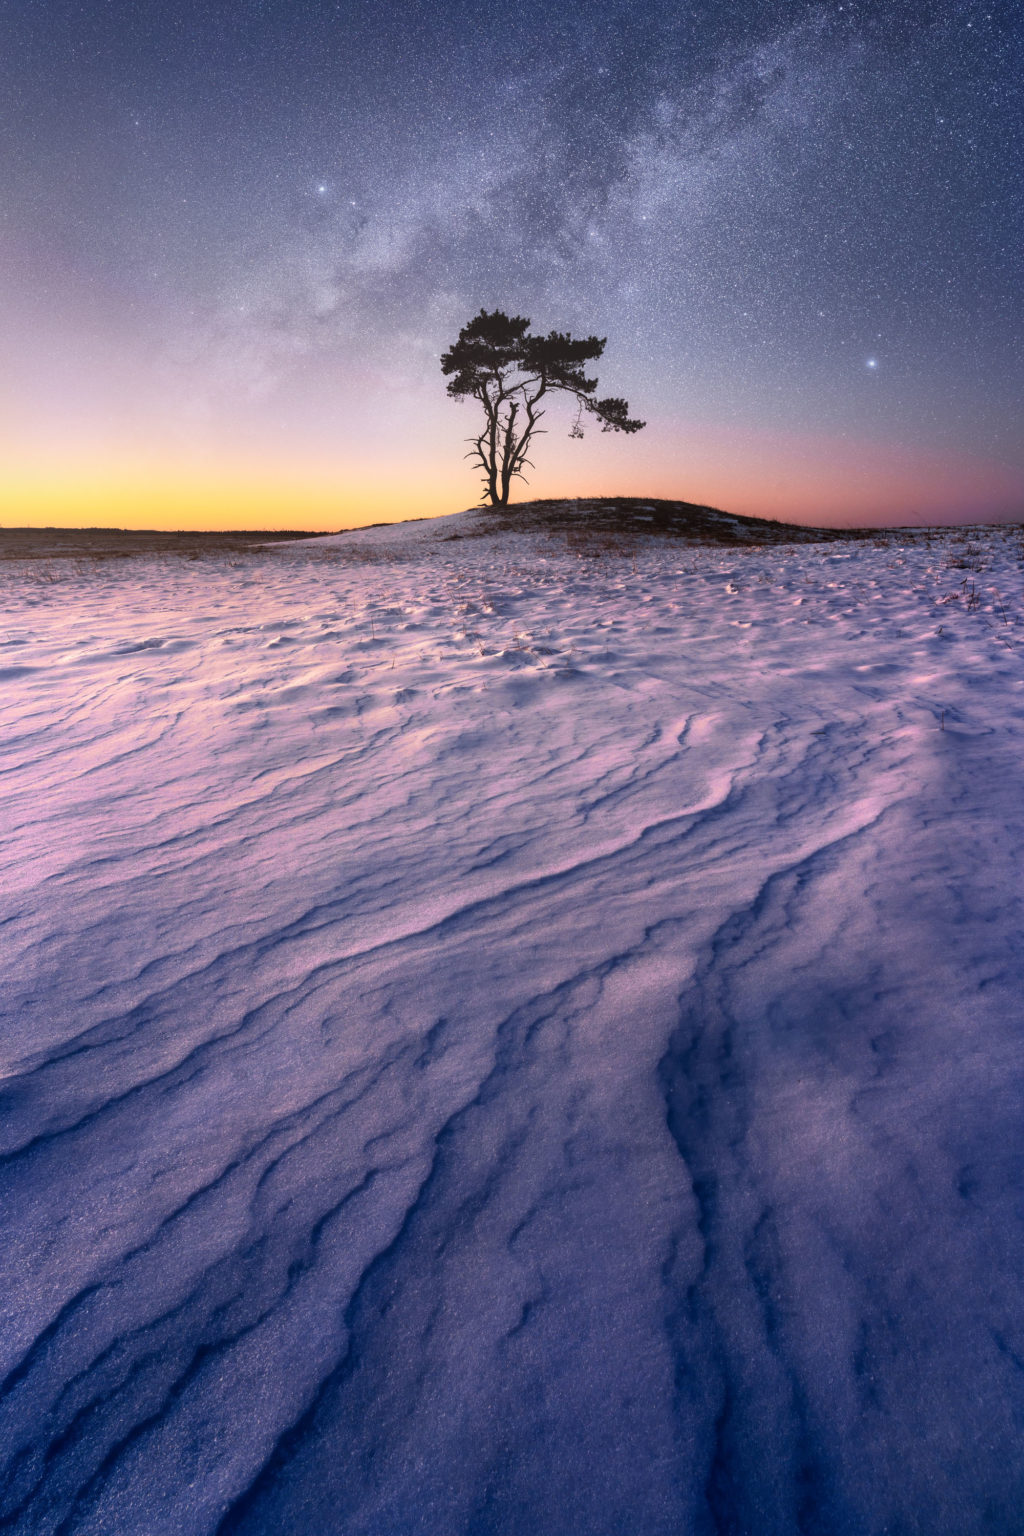 How To Get That 'Wide-Angle Look' in Landscape Photographs